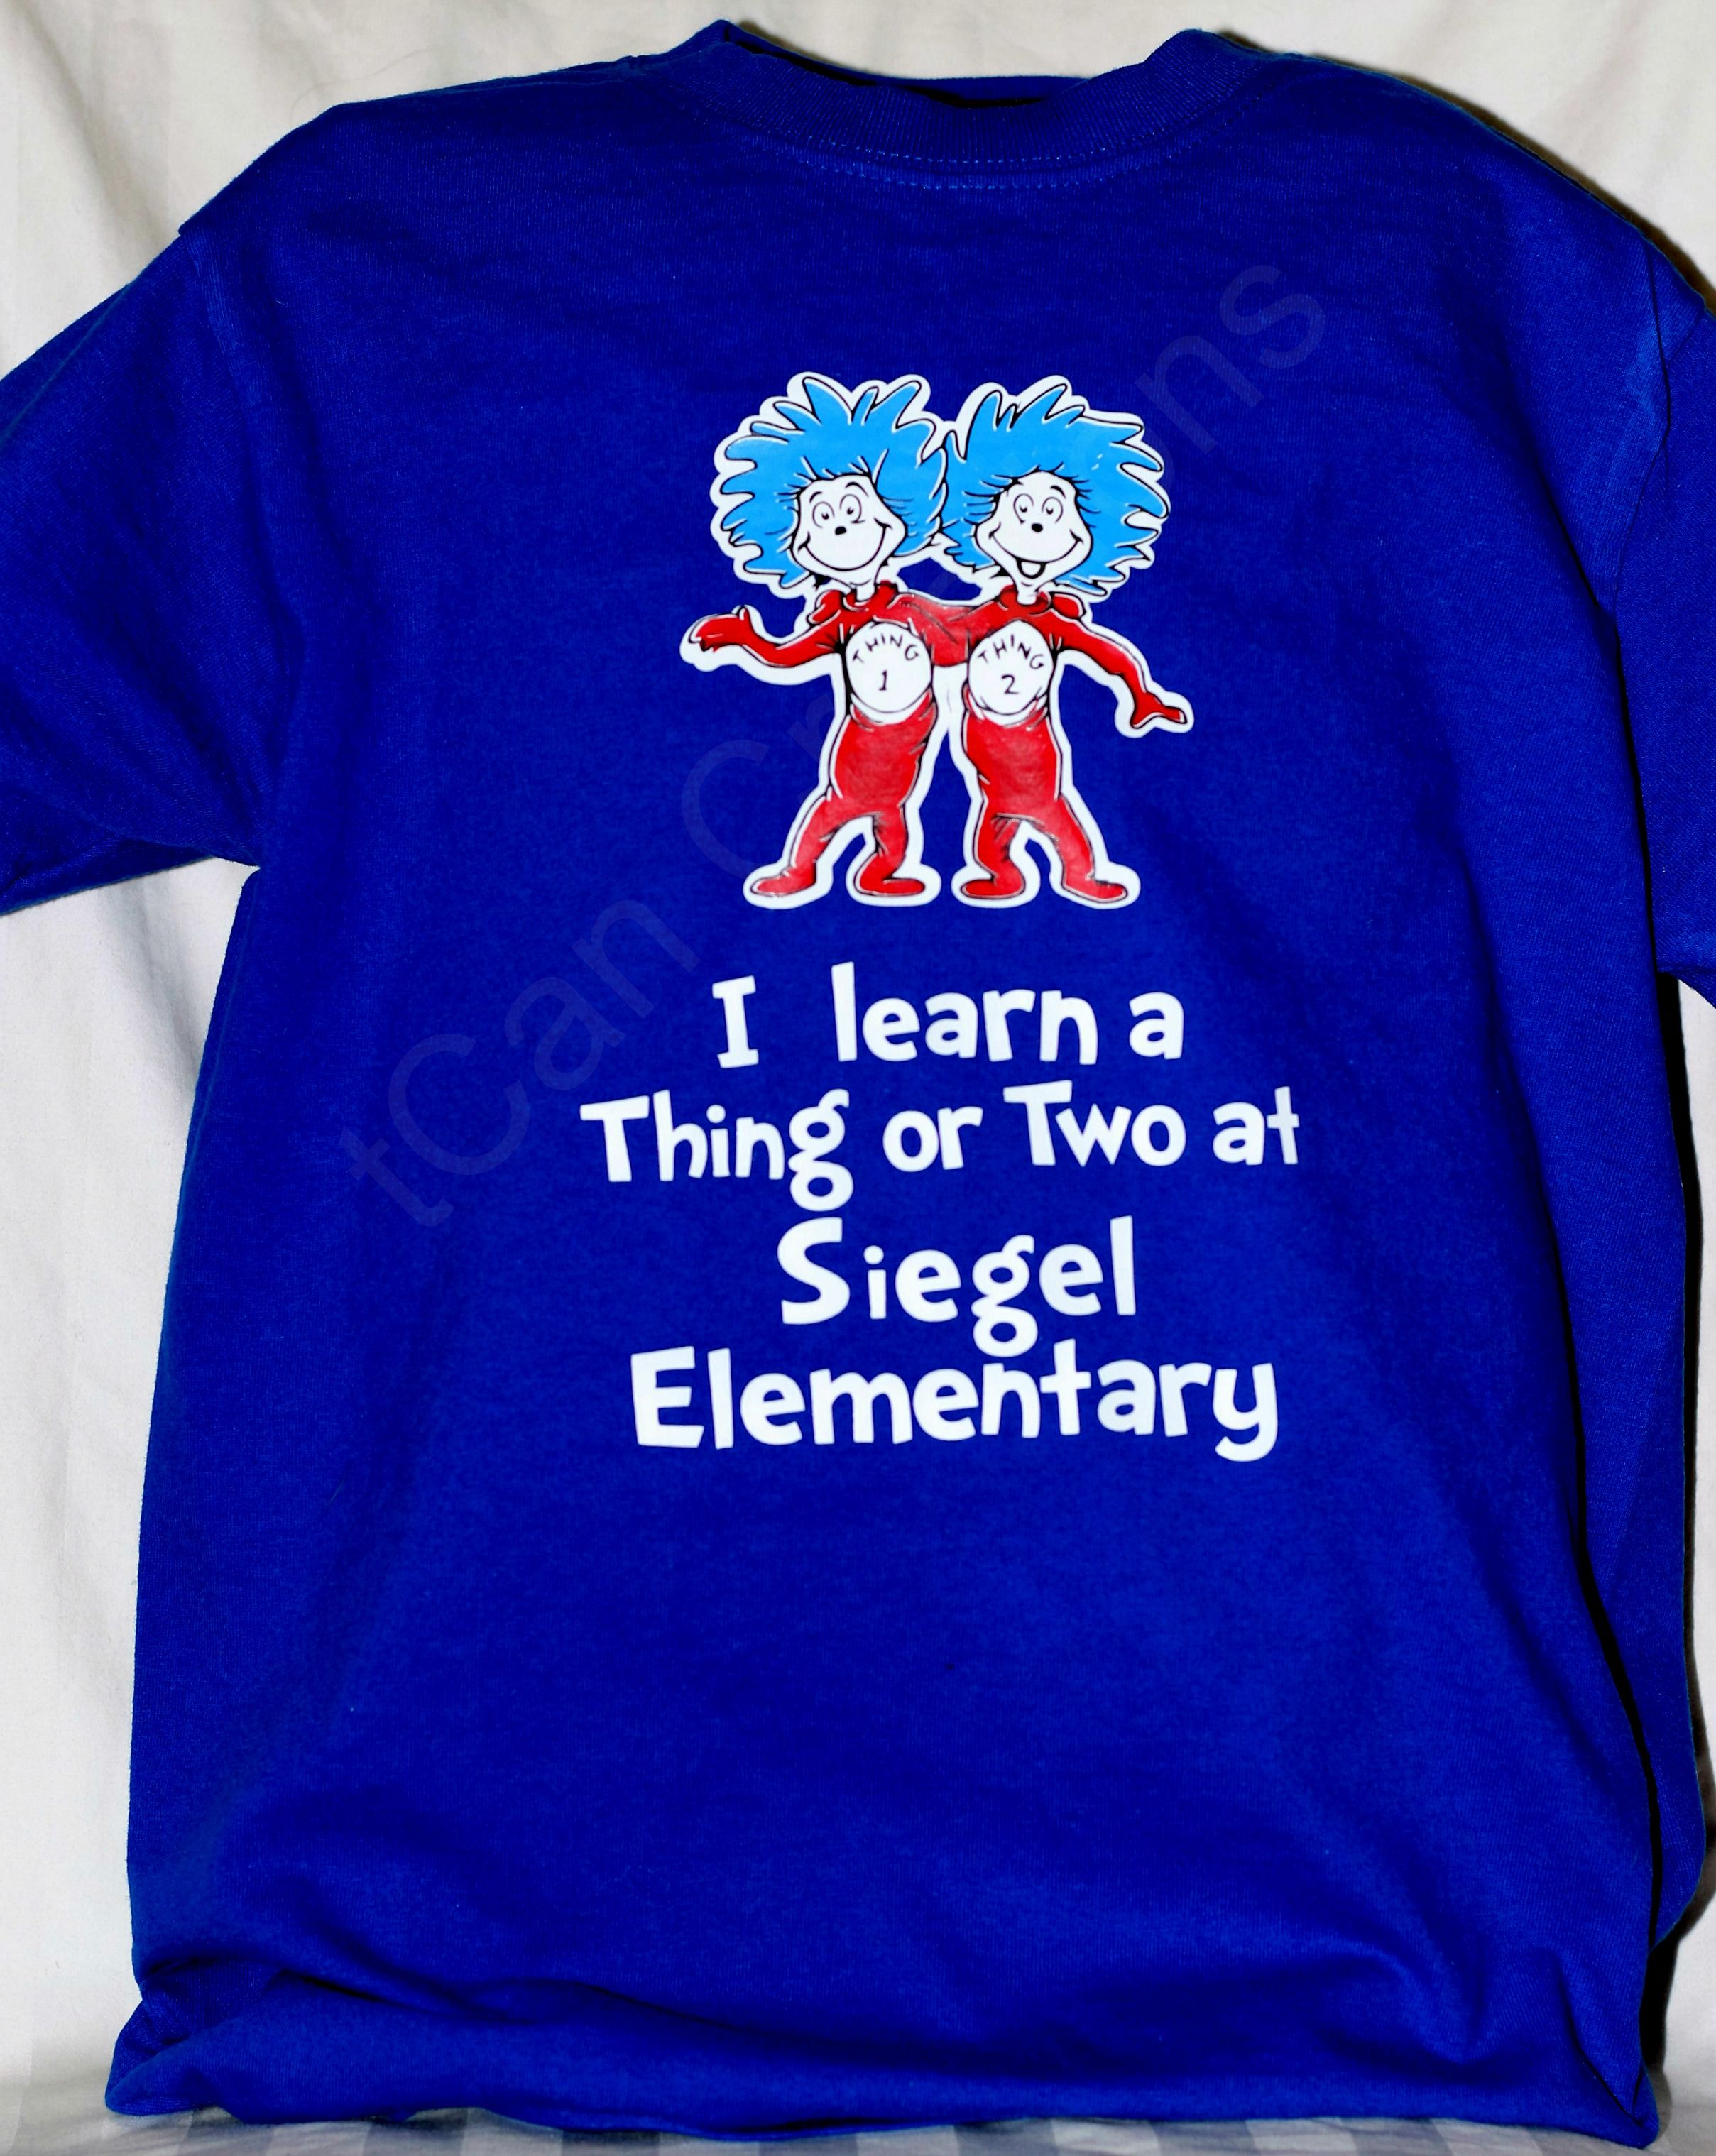 T shirt design ideas for schools - I Learn A Thing Or Two T Shirt For Dr Seuss Birthday March 2nd